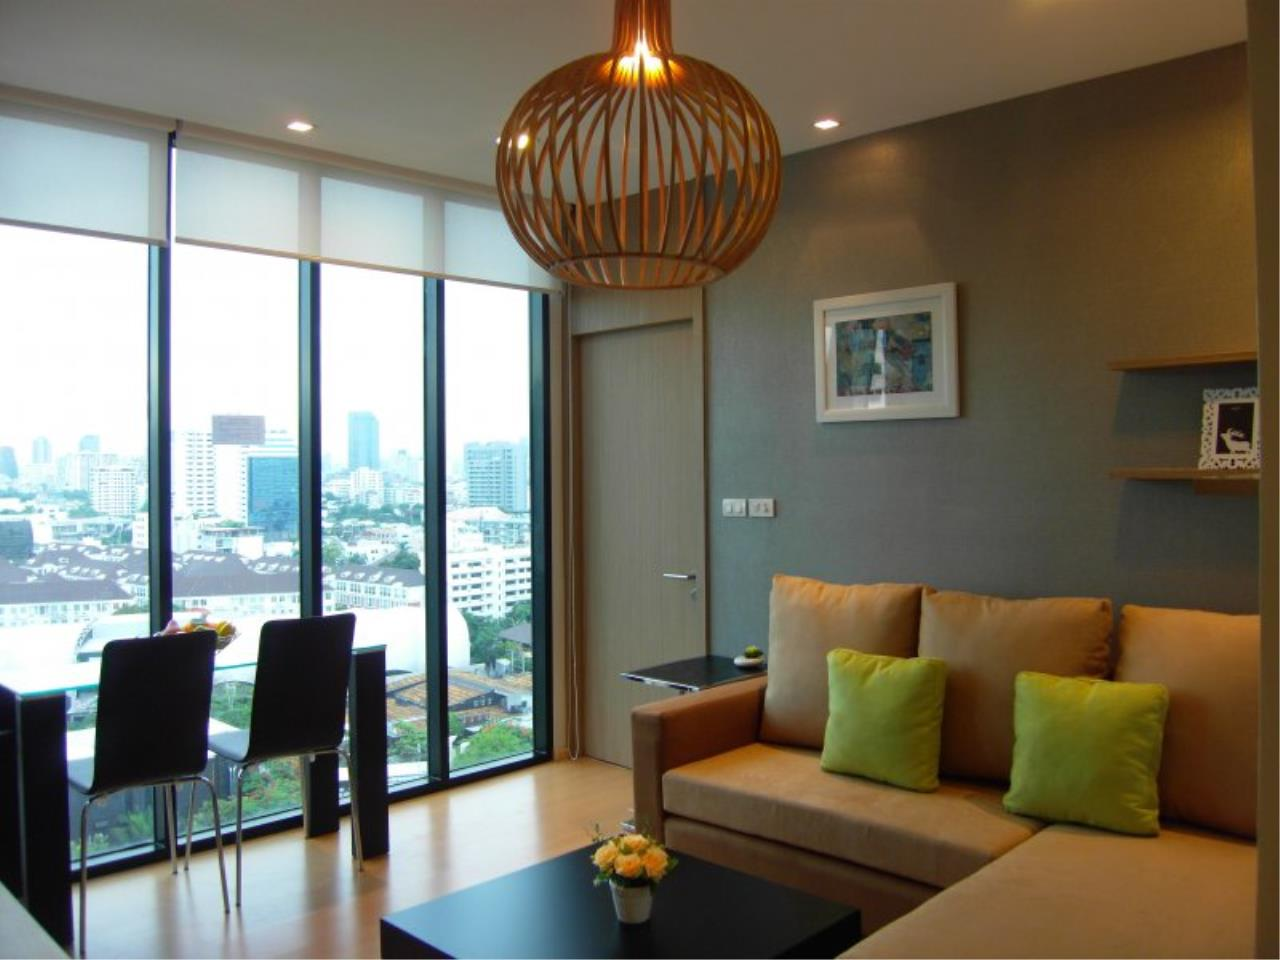 Piri Property Agency's Cozy 1 Bedroom in the Alcove Thonglor 10 building for rent on high floor 1